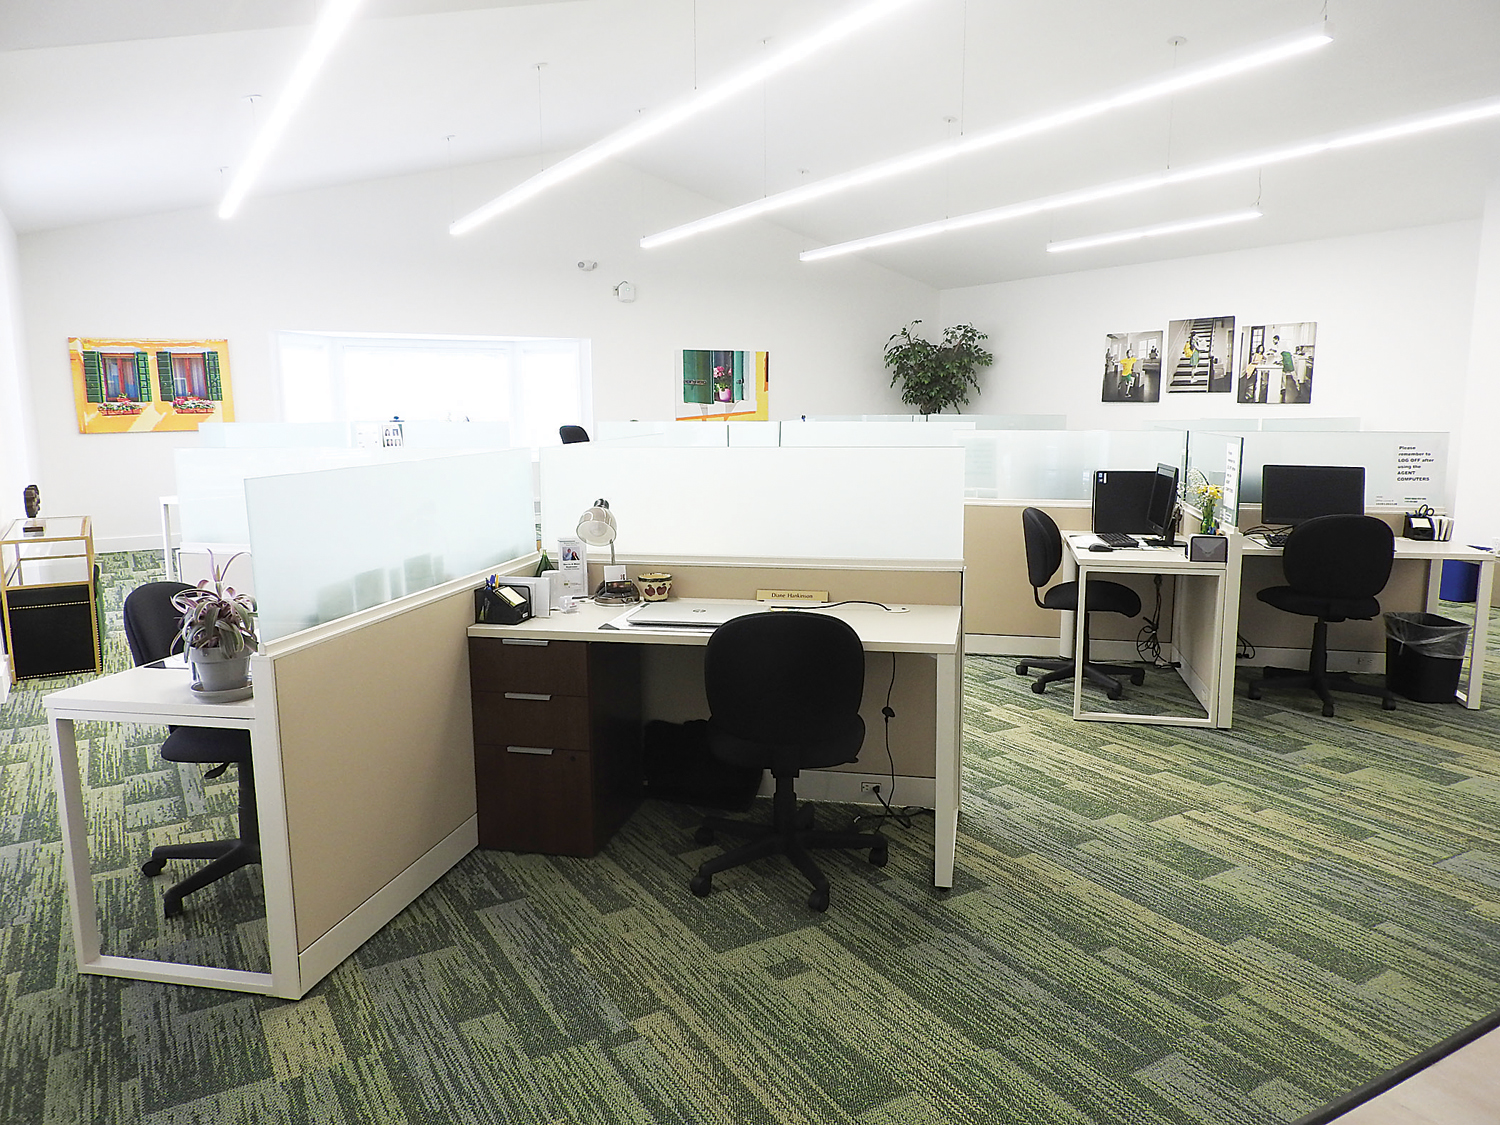 The newly remodeled office has an open work space design. Photo by Karen Fien